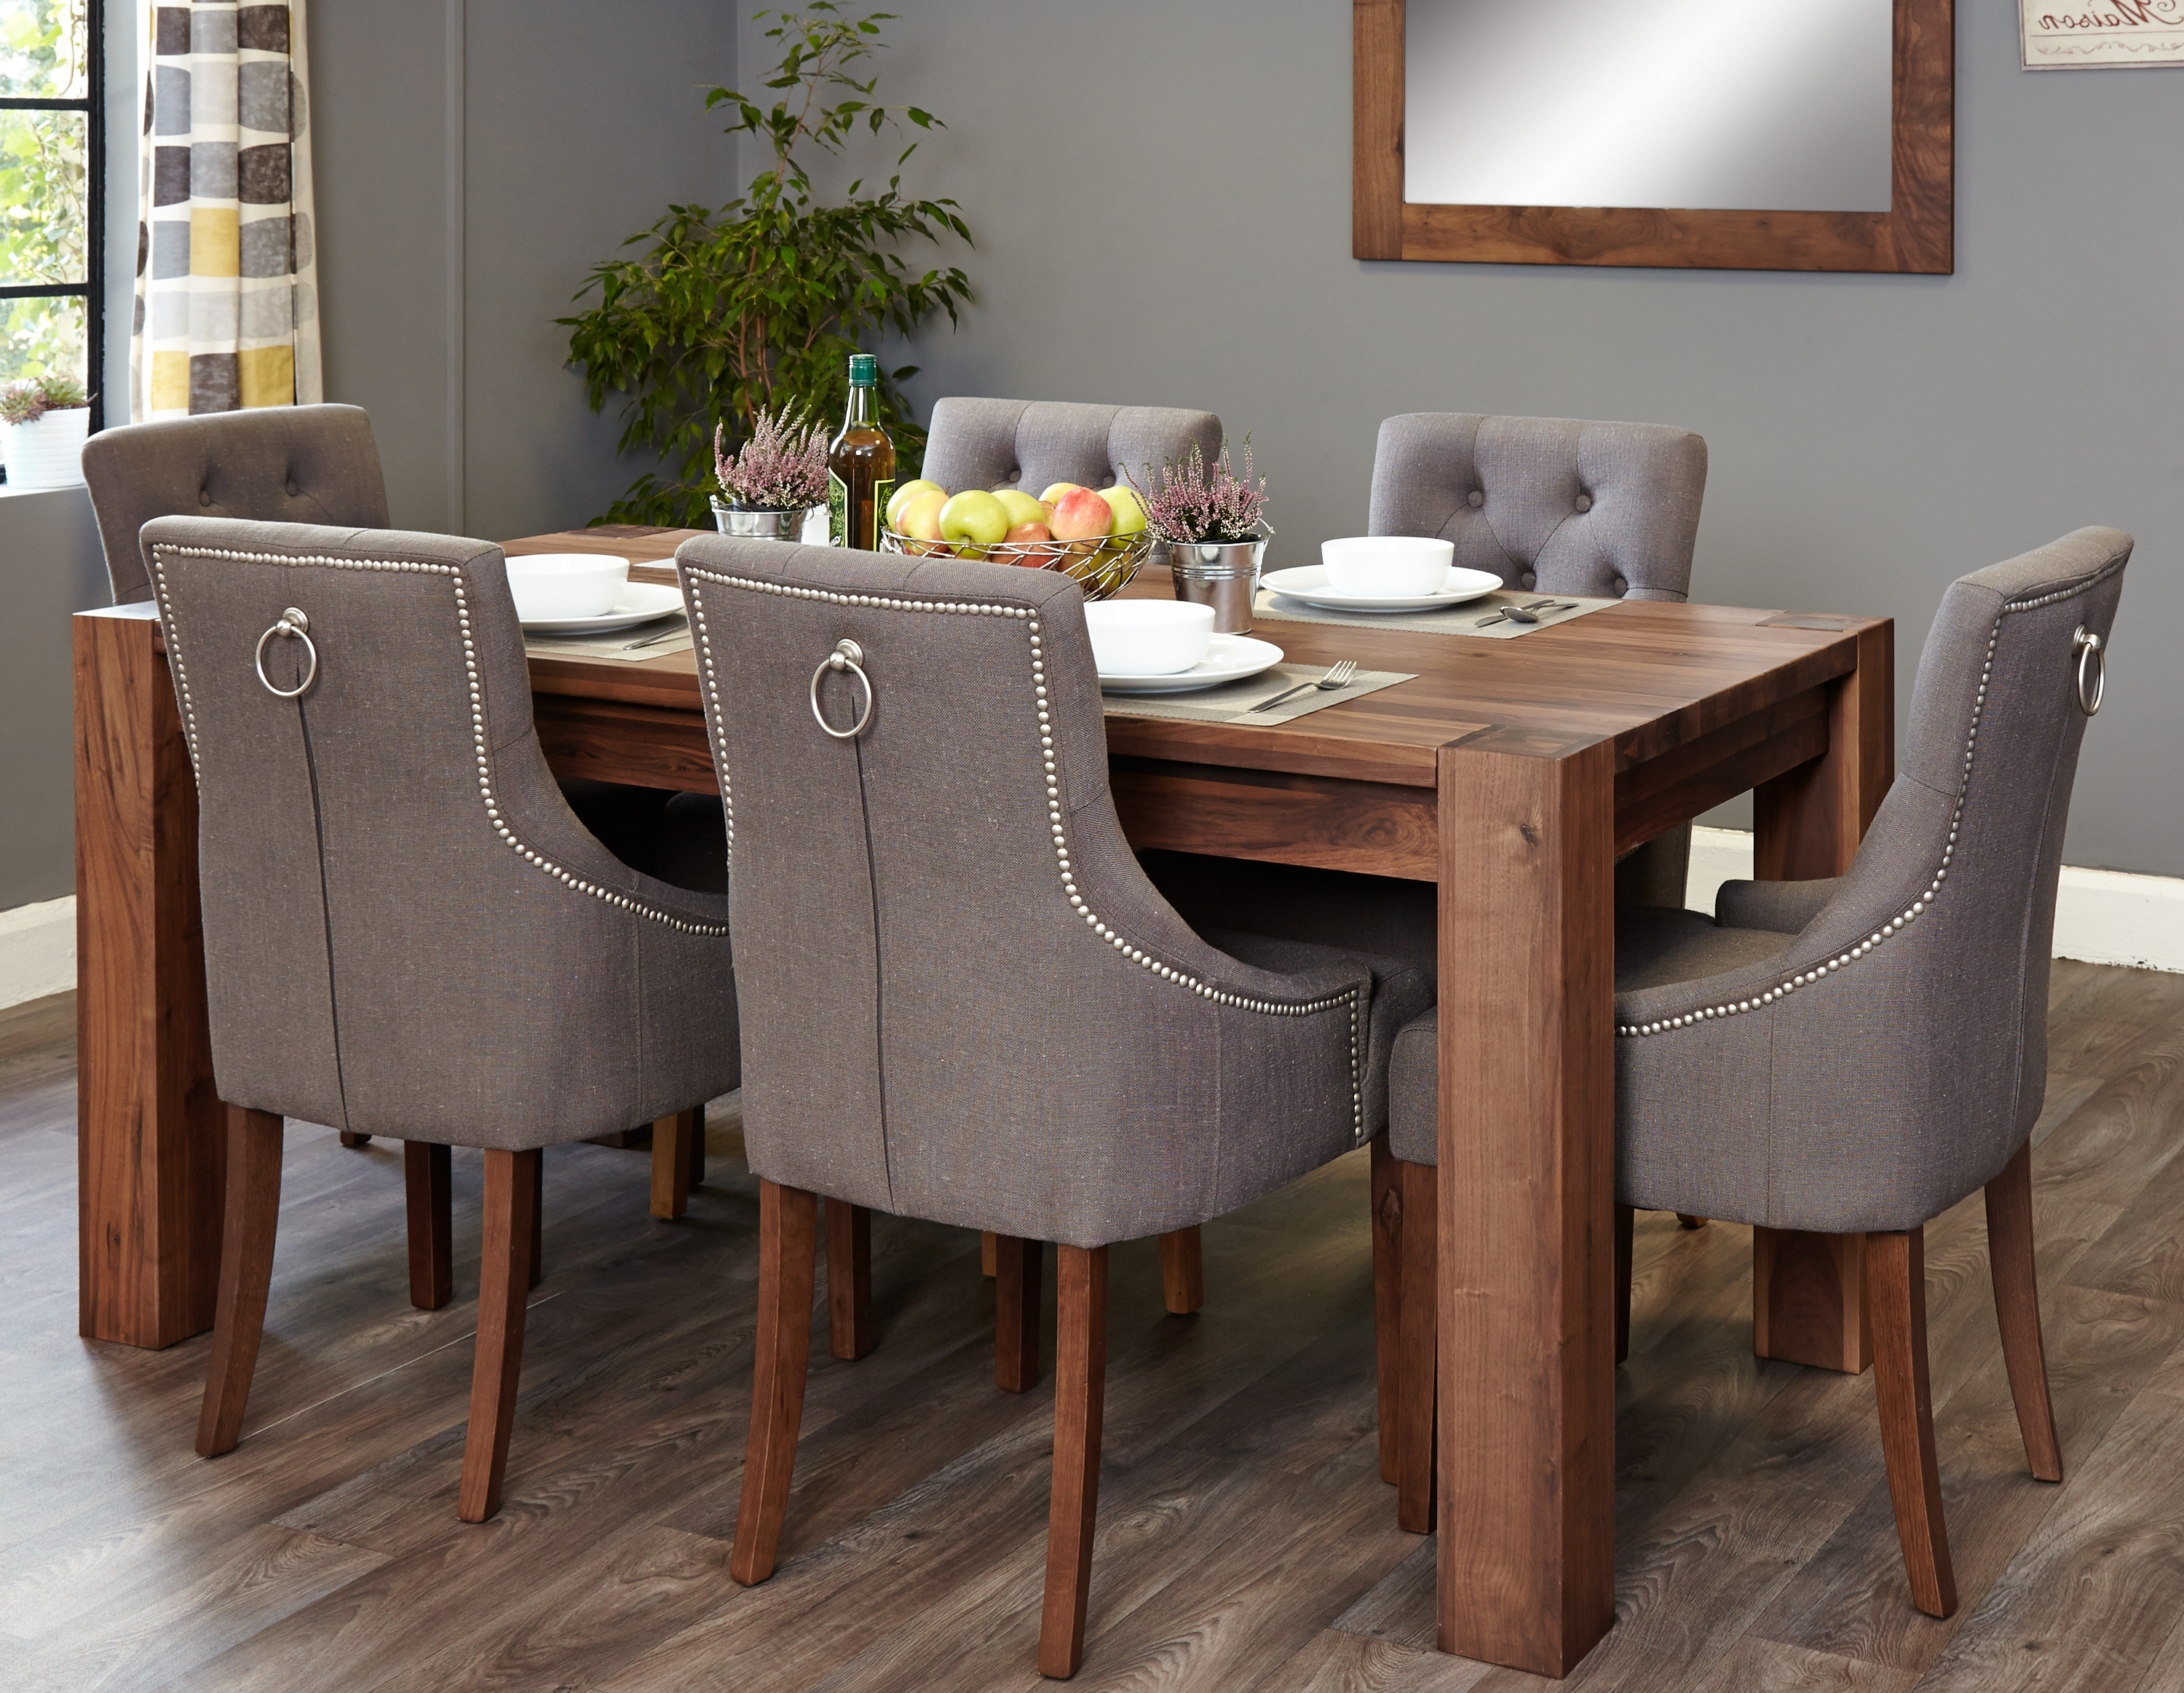 Popular Walnut Dining Table And 6 Chairs For Create The Ultimate Entertaining Space With Our New Range Of Walnut (View 11 of 25)